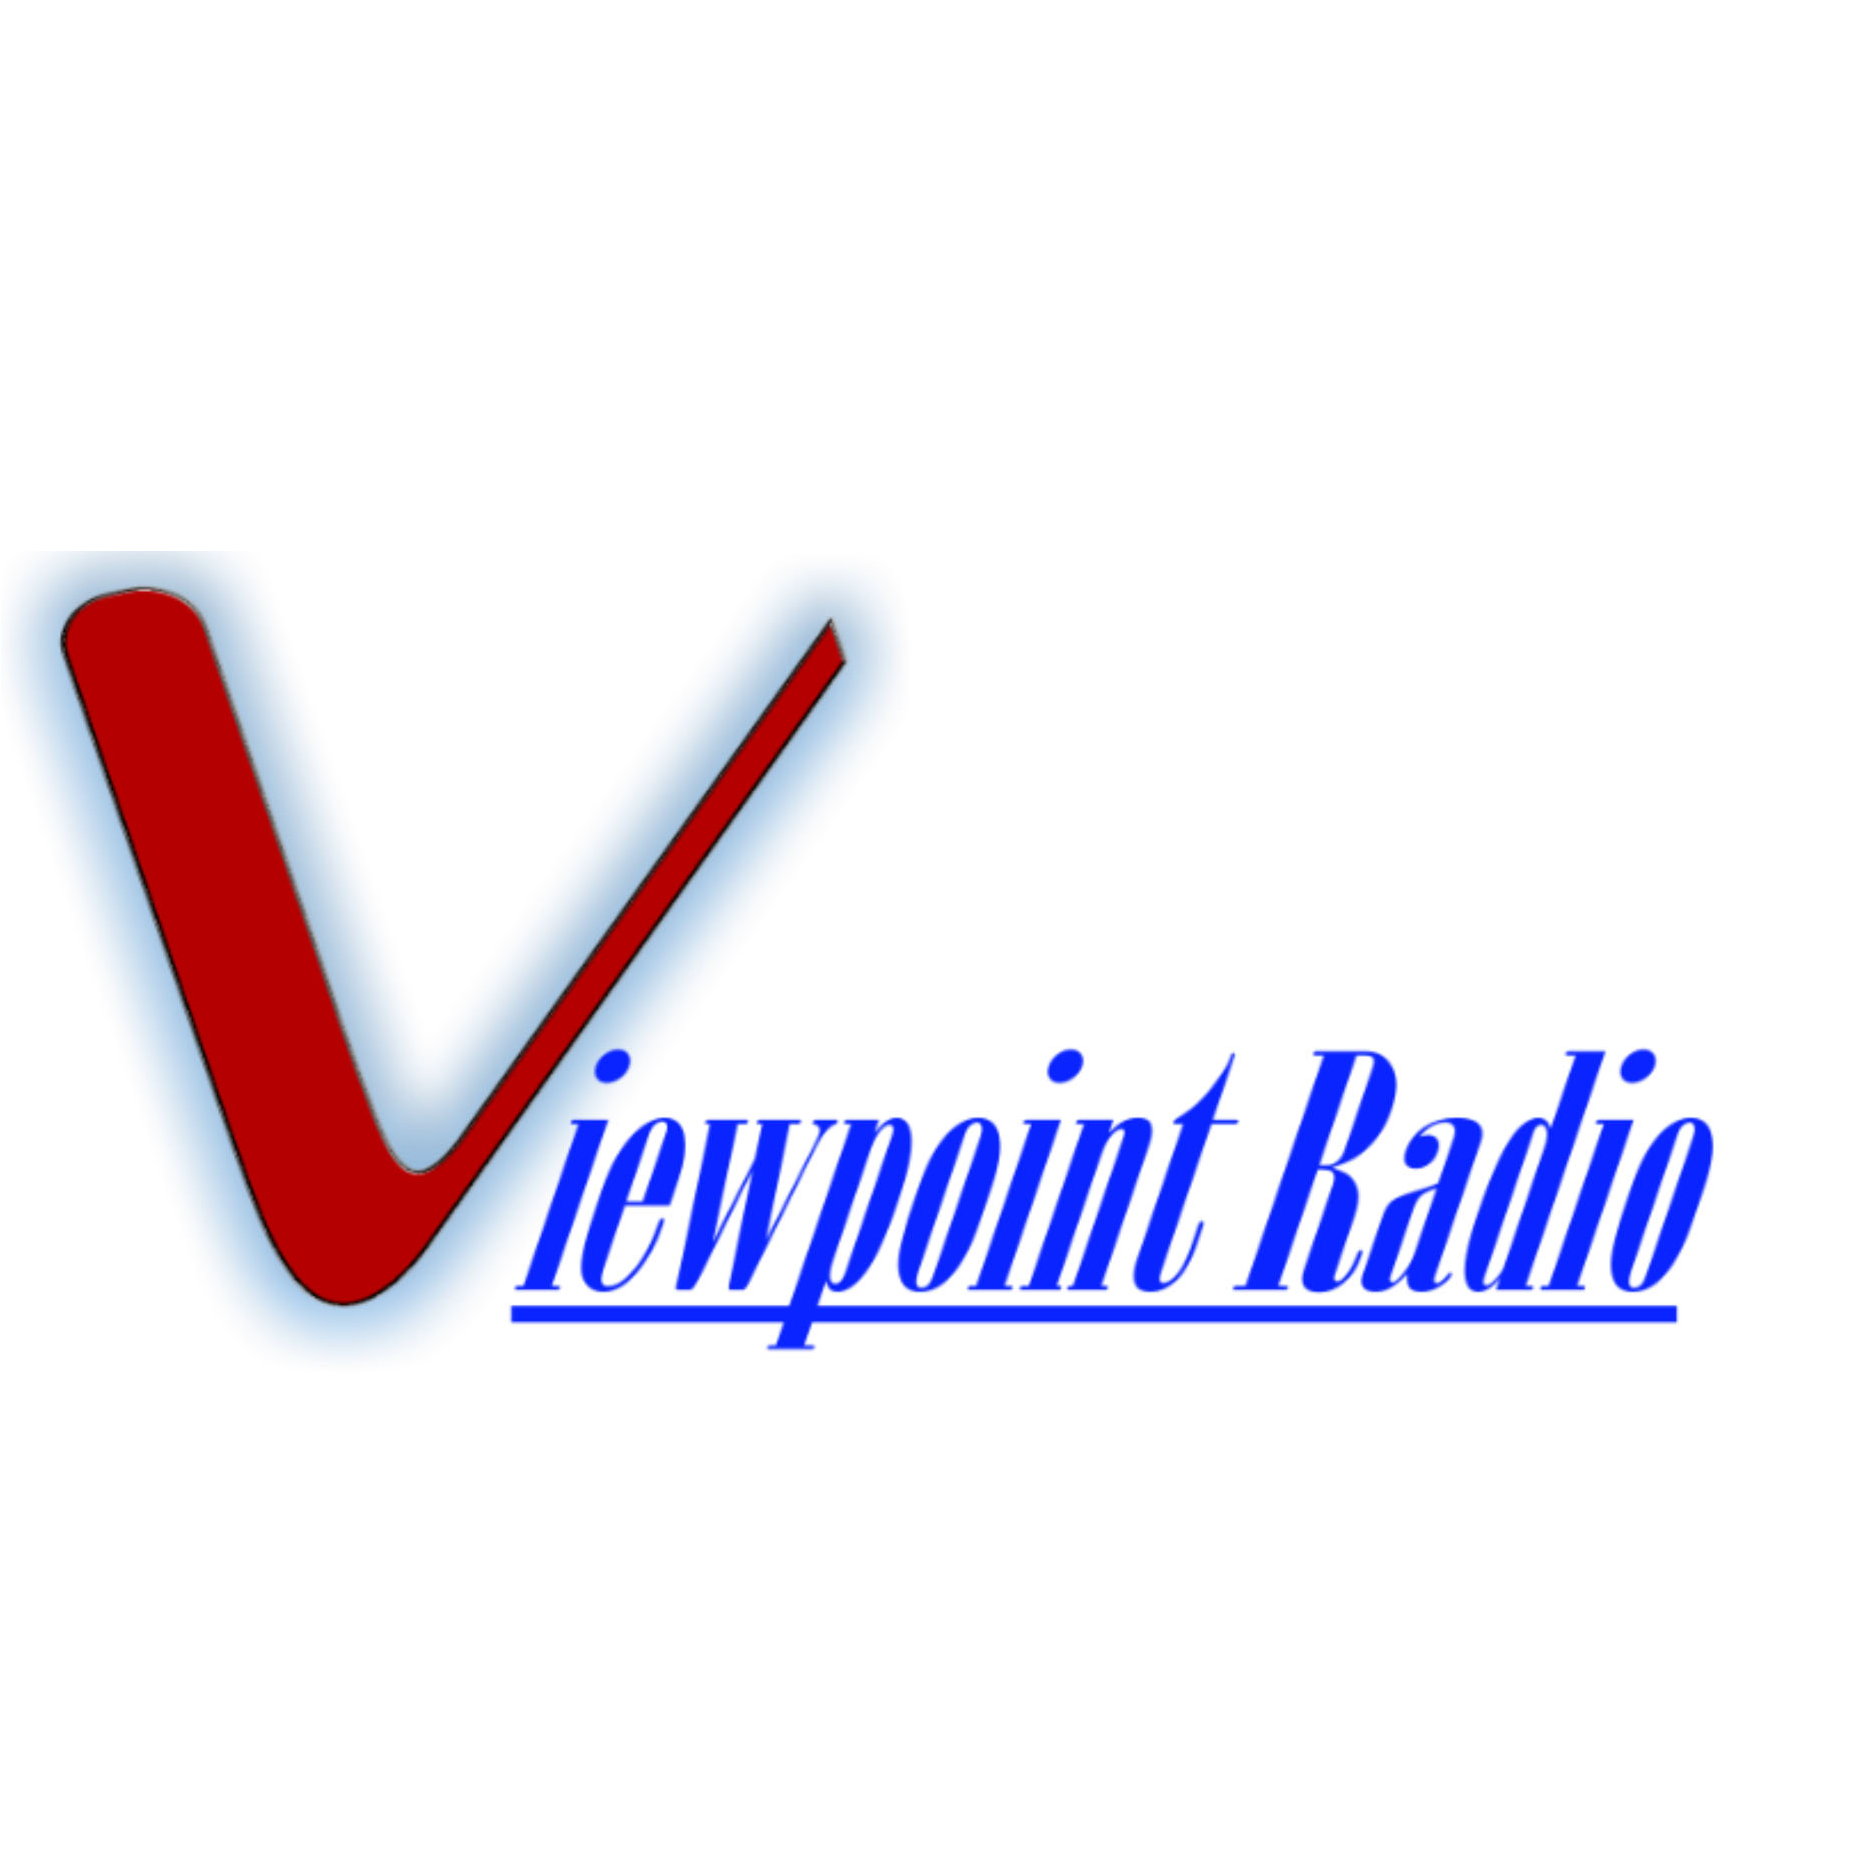 Viewpoint Radio CA!